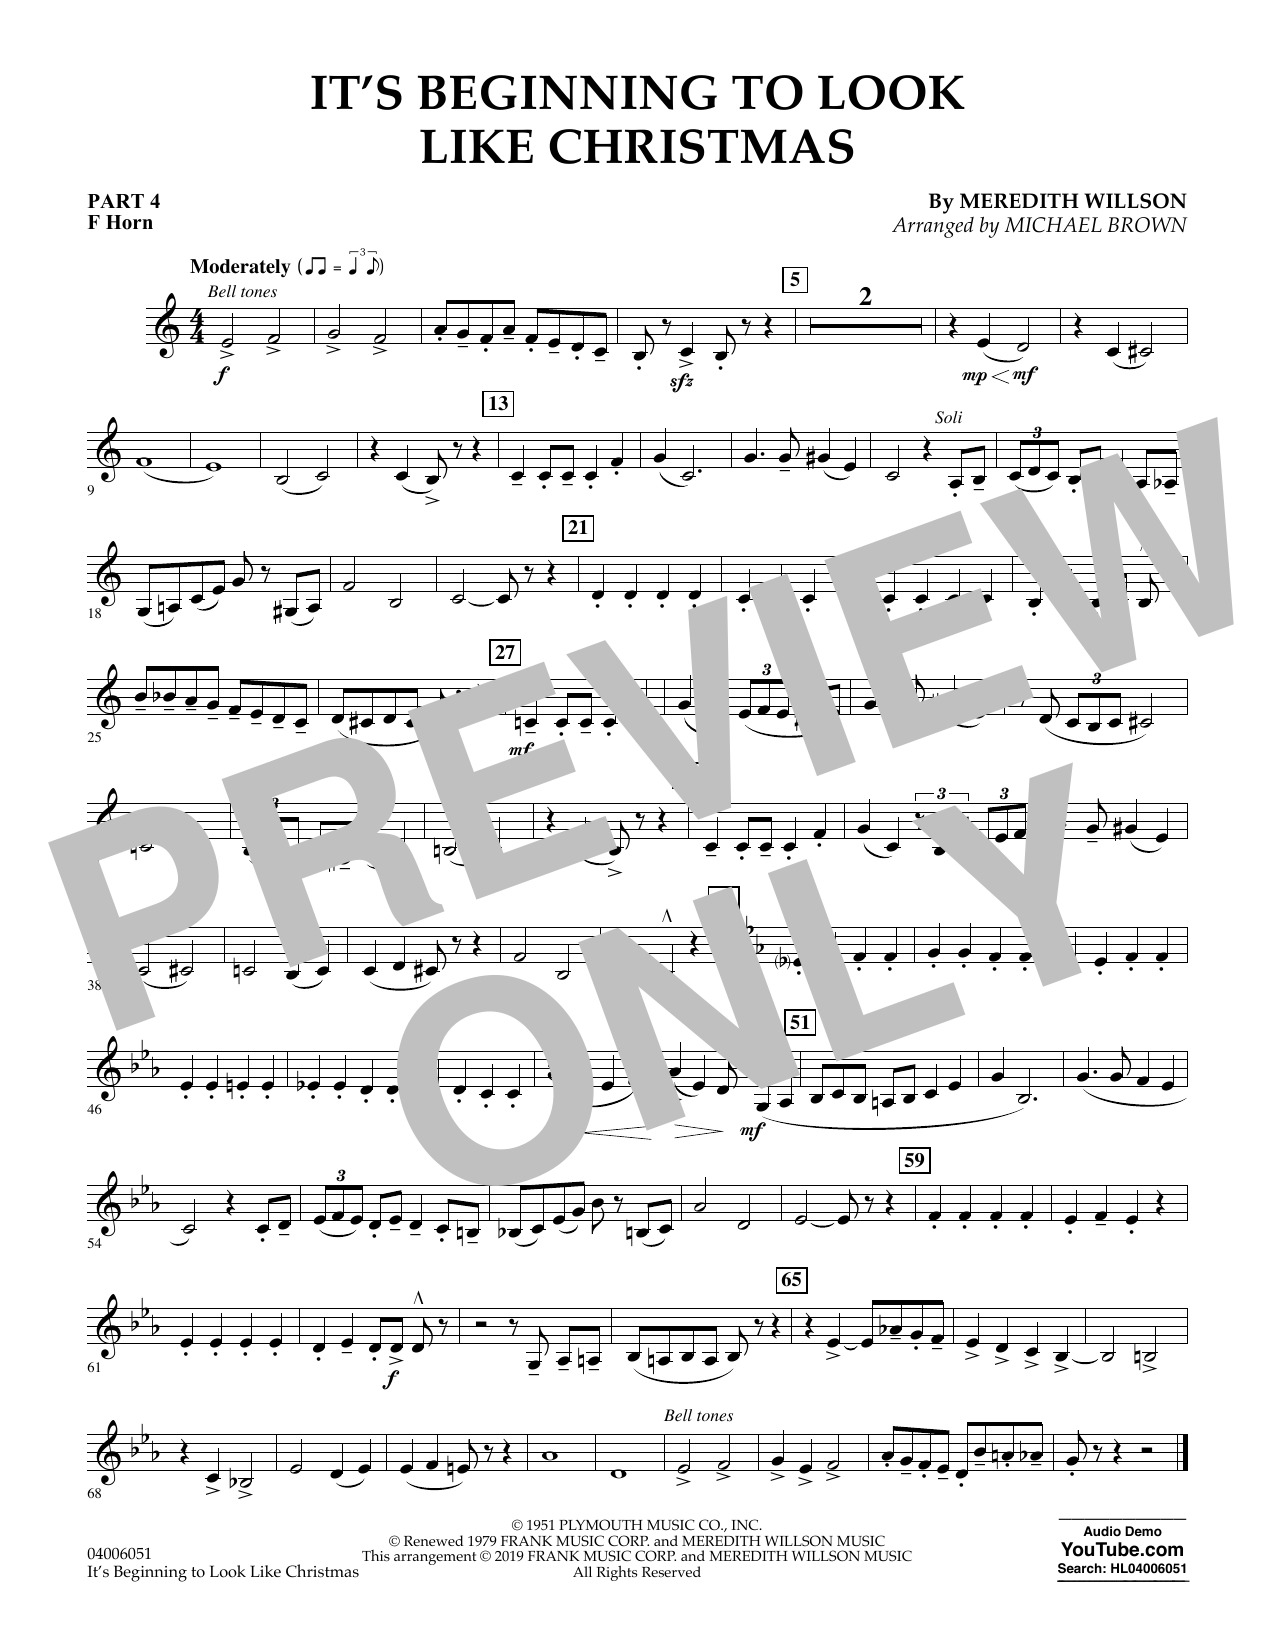 It's Beginning to Look Like Christmas (arr. Michael Brown) - Pt.4 - F Horn (Flex-Band)